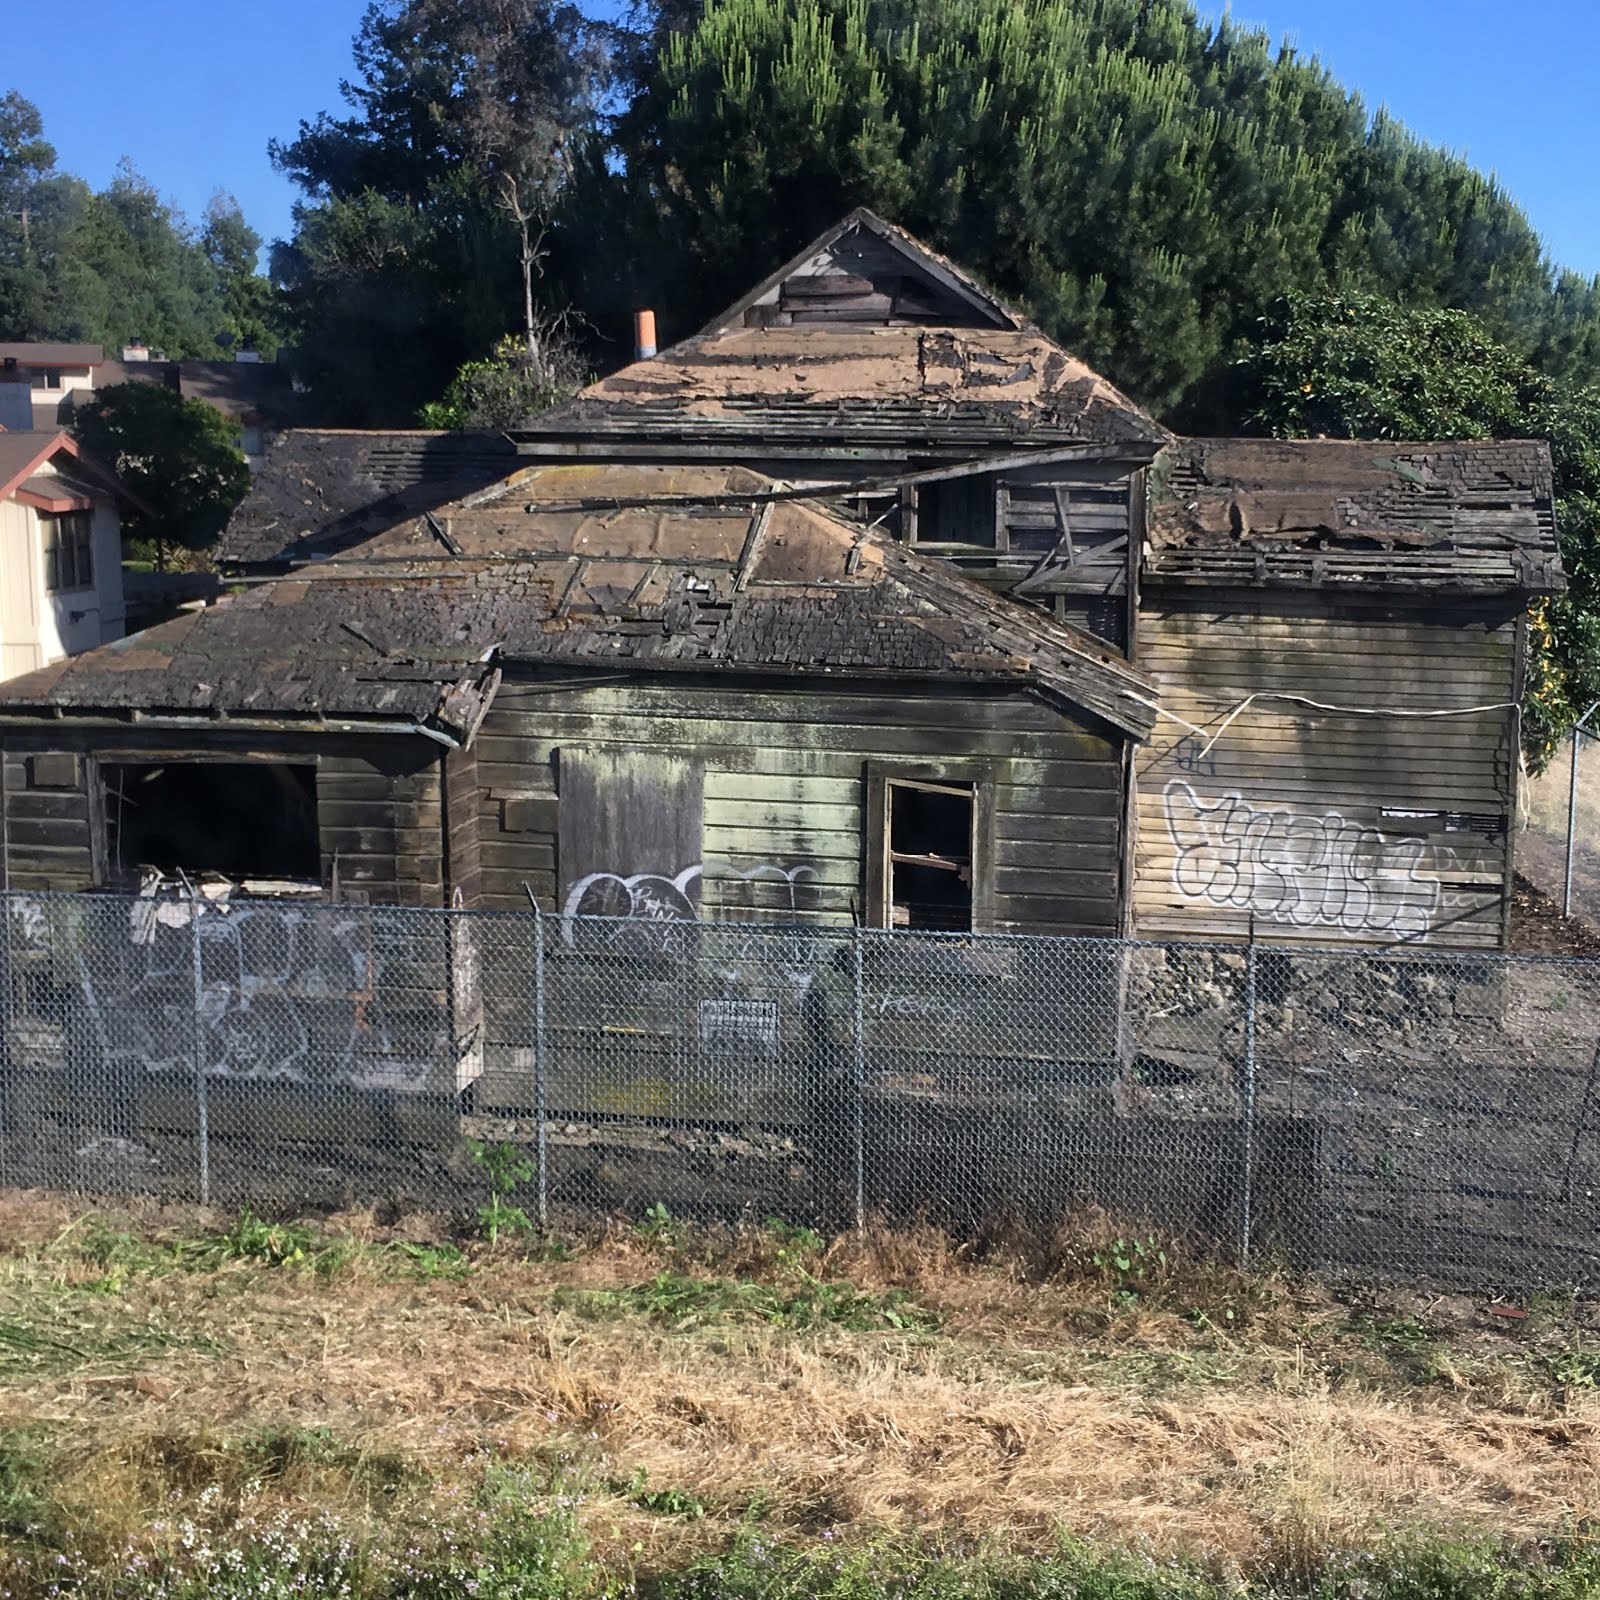 Billy Wardle family blog: ACE Train Views: Old House and ...